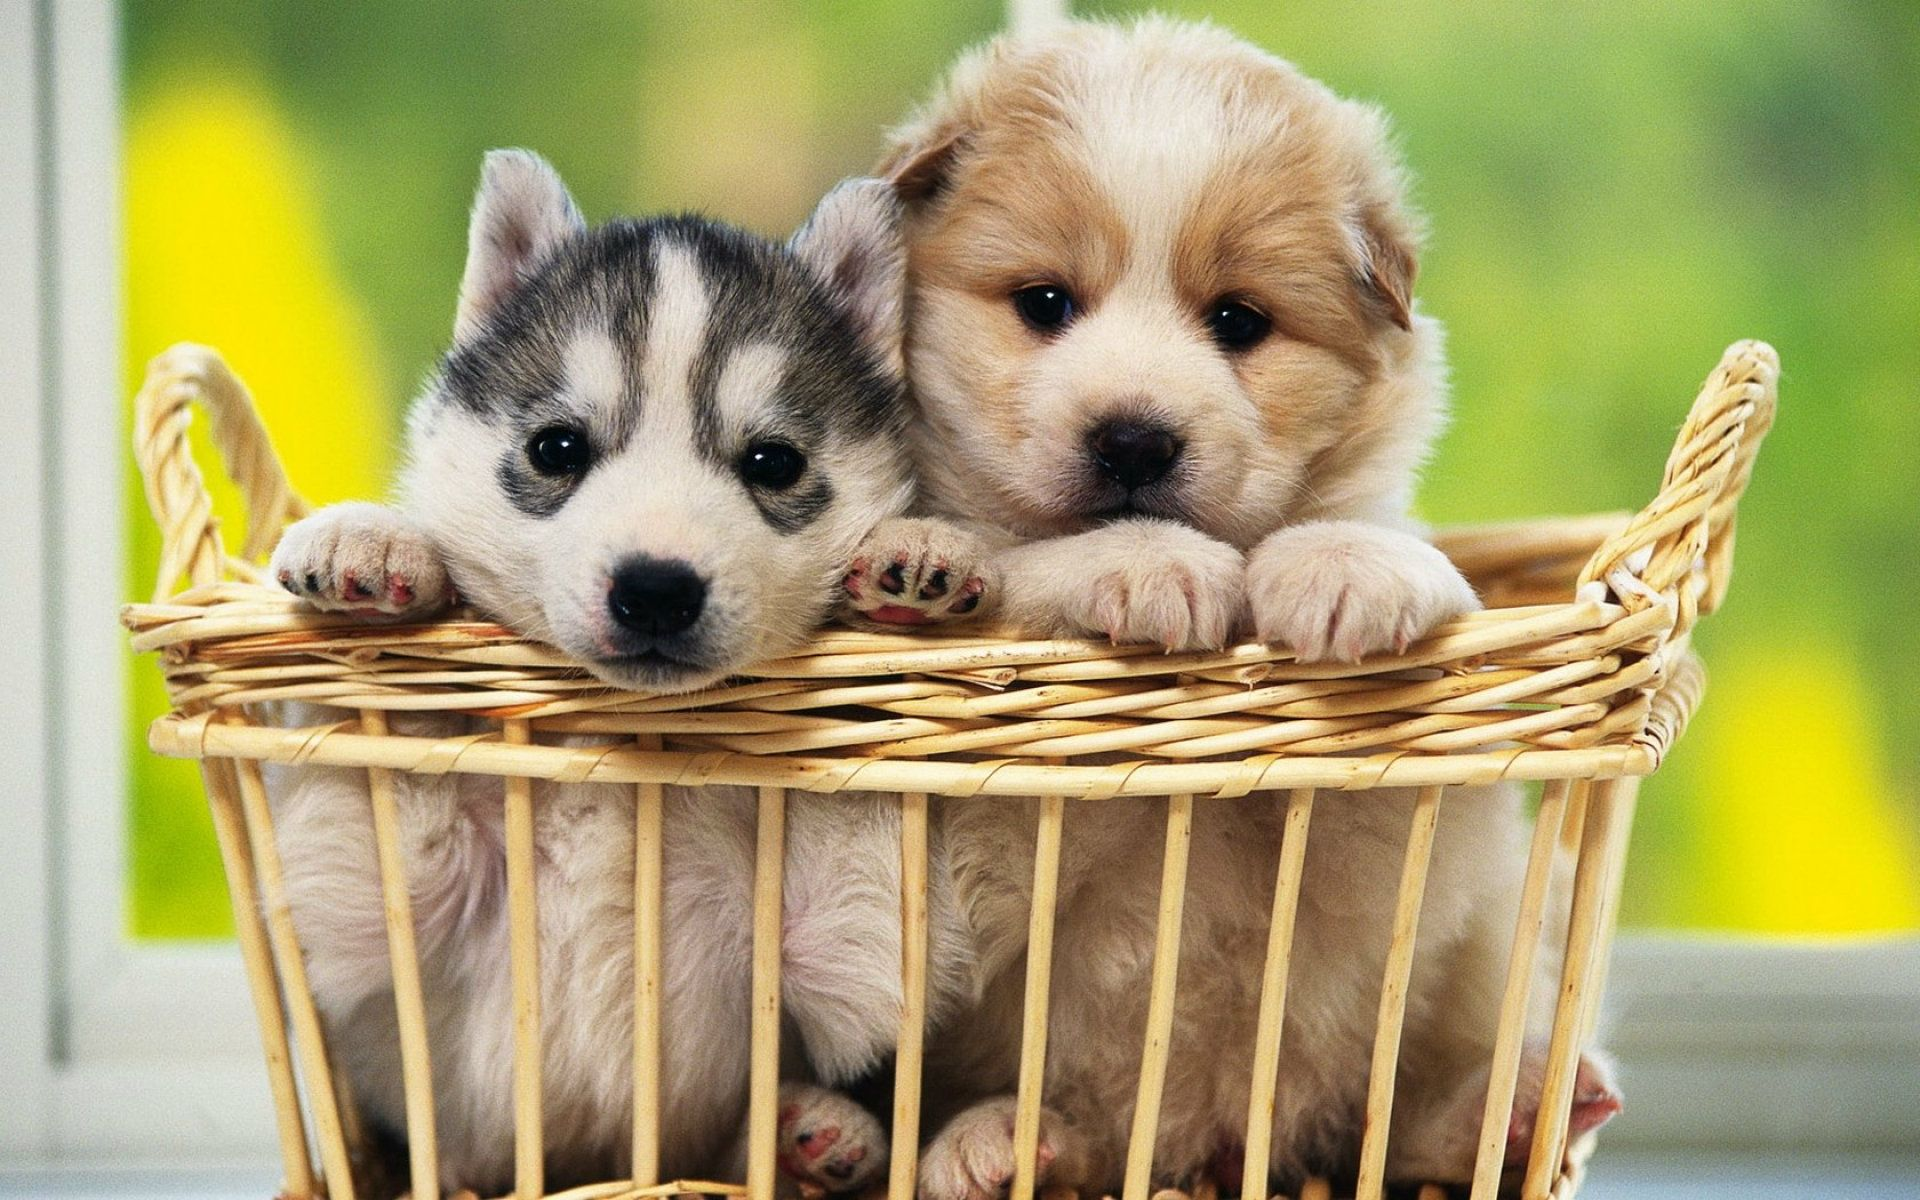 Dog Wallpapers Free Download Wide Pets Animals HD Desktop Images ...